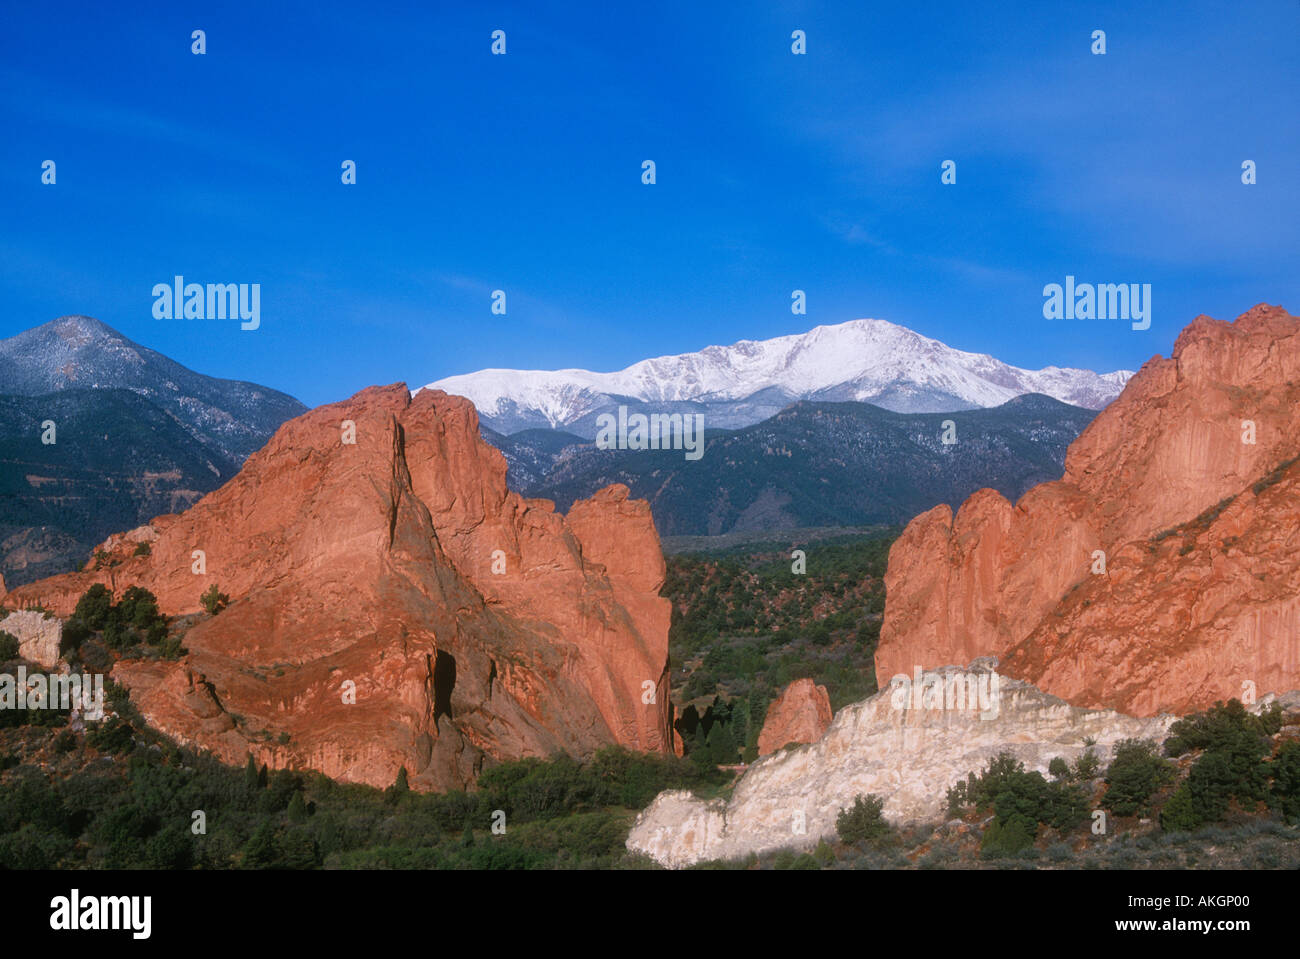 Garden of the Gods rock formations with snow-capped Pikes Peak behind Colorado Springs, Colorado - Stock Image